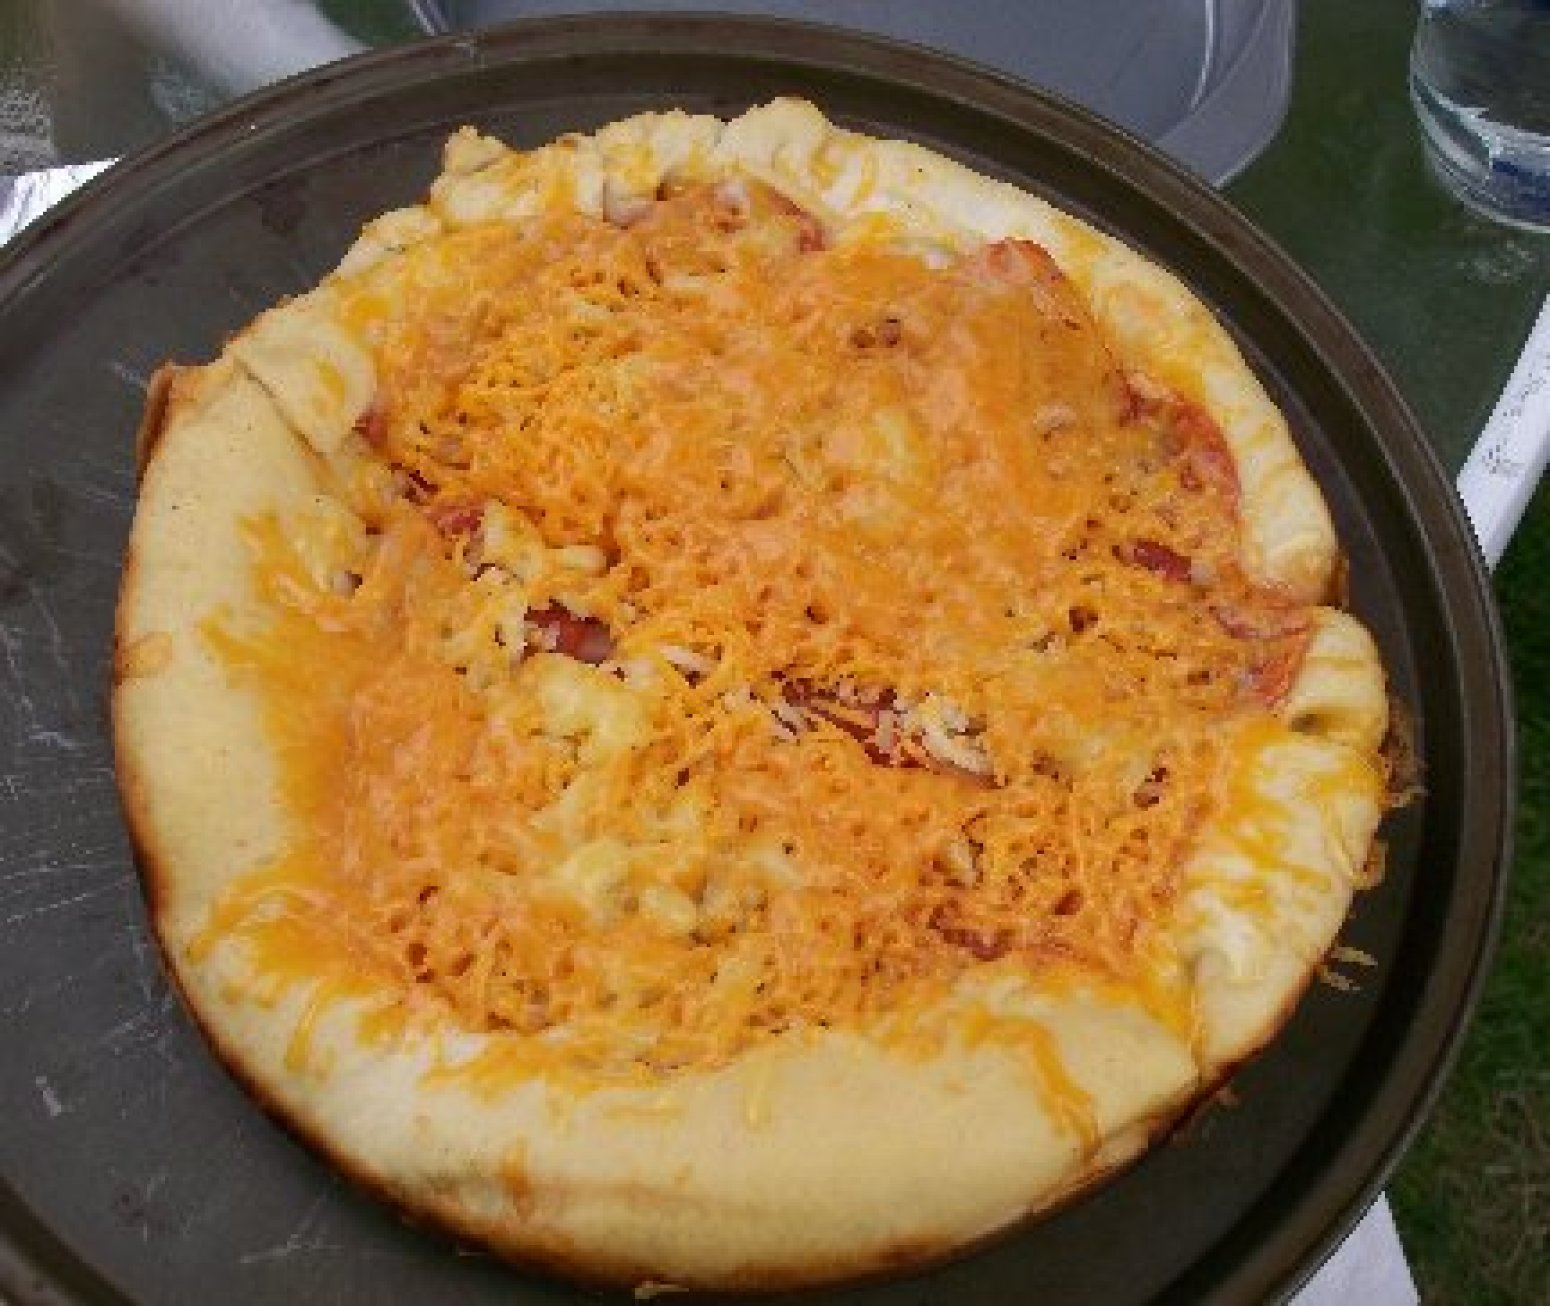 Dutch oven pizza recipe just a pinch recipes for Healthy dutch oven camping recipes